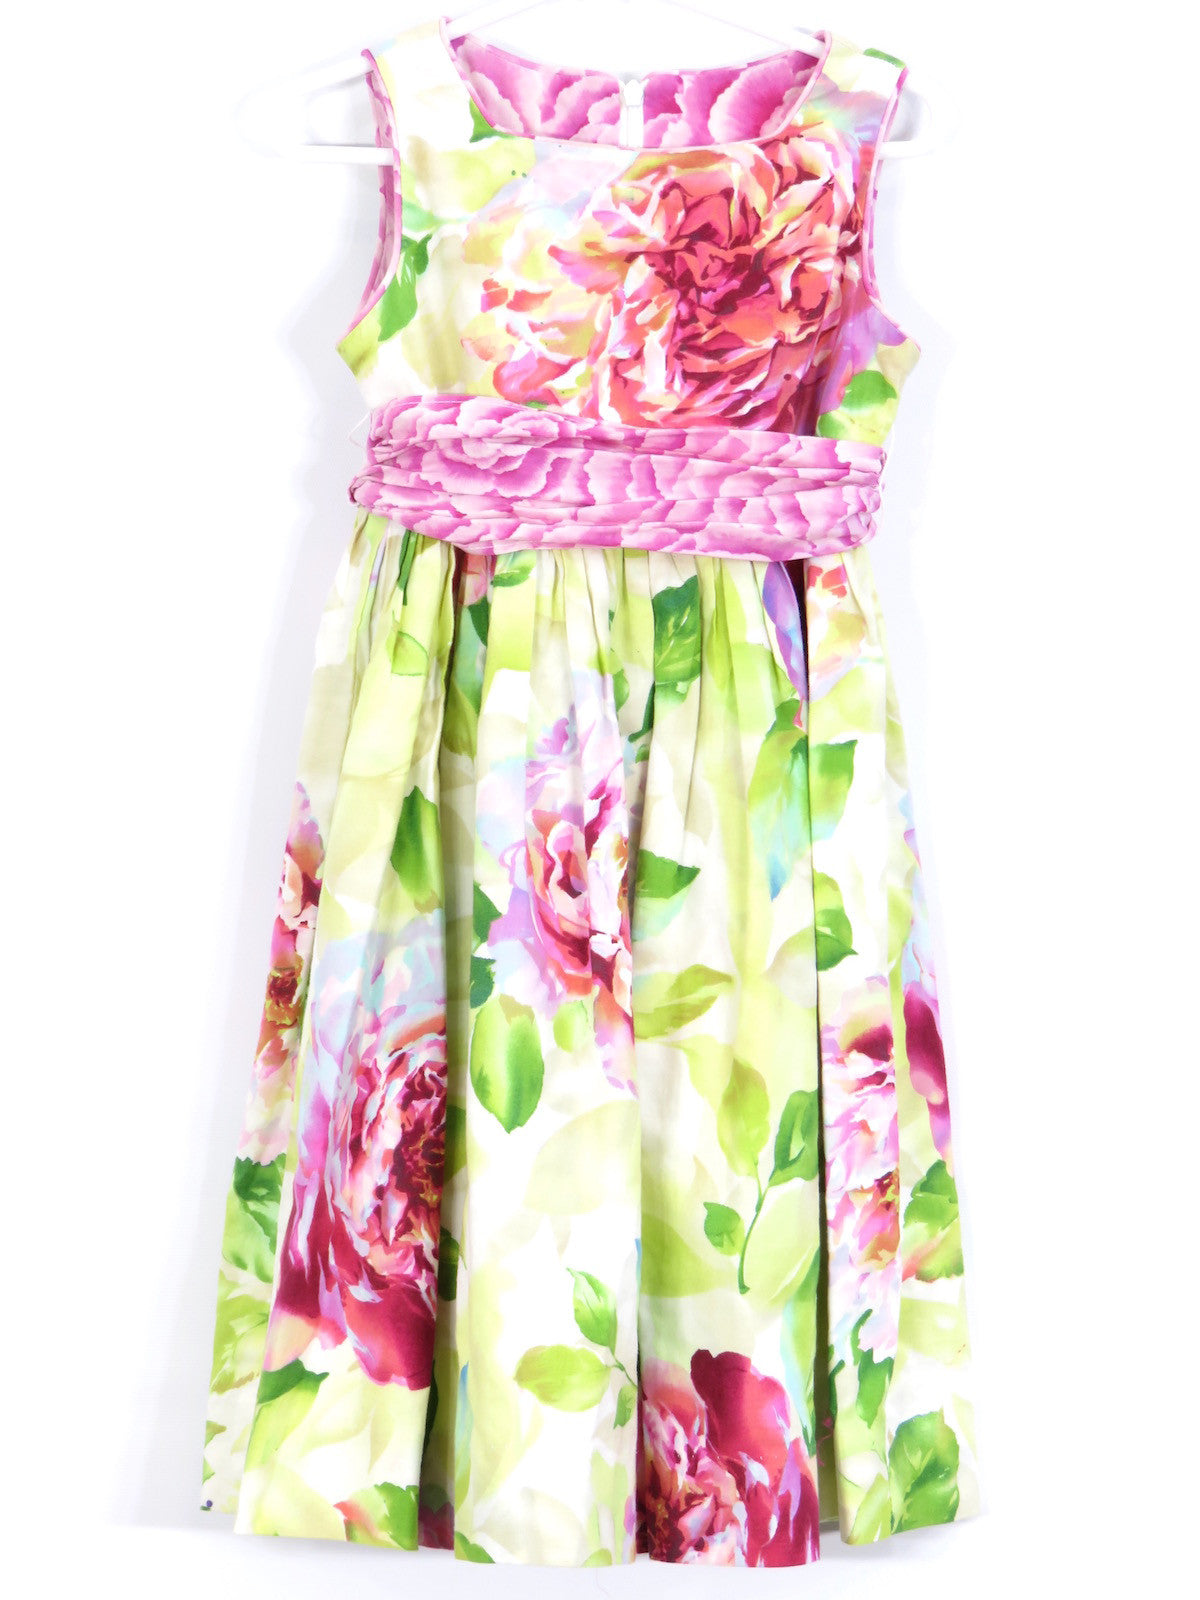 Green Floral Dress With White Ribbon Girls' Clothing (2-16 Years) Clothes, Shoes & Accessories